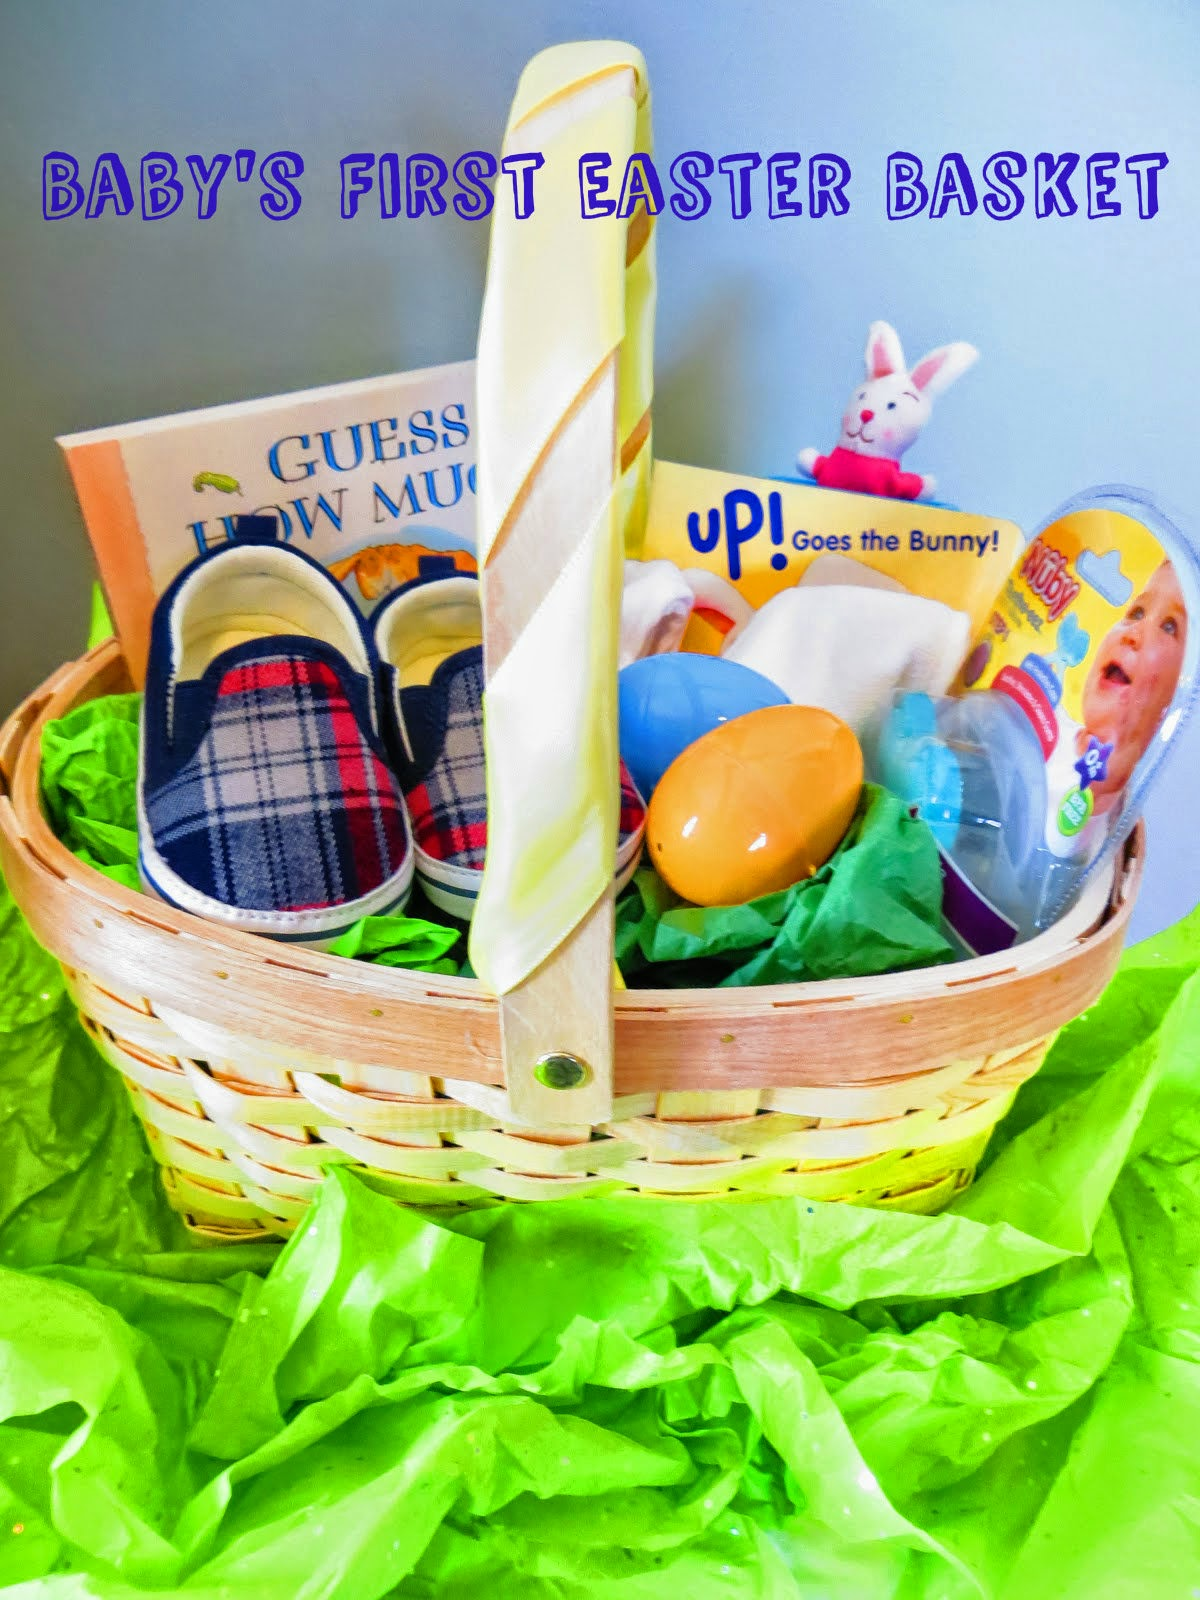 Beautifully Candid: Baby's First Easter Basket